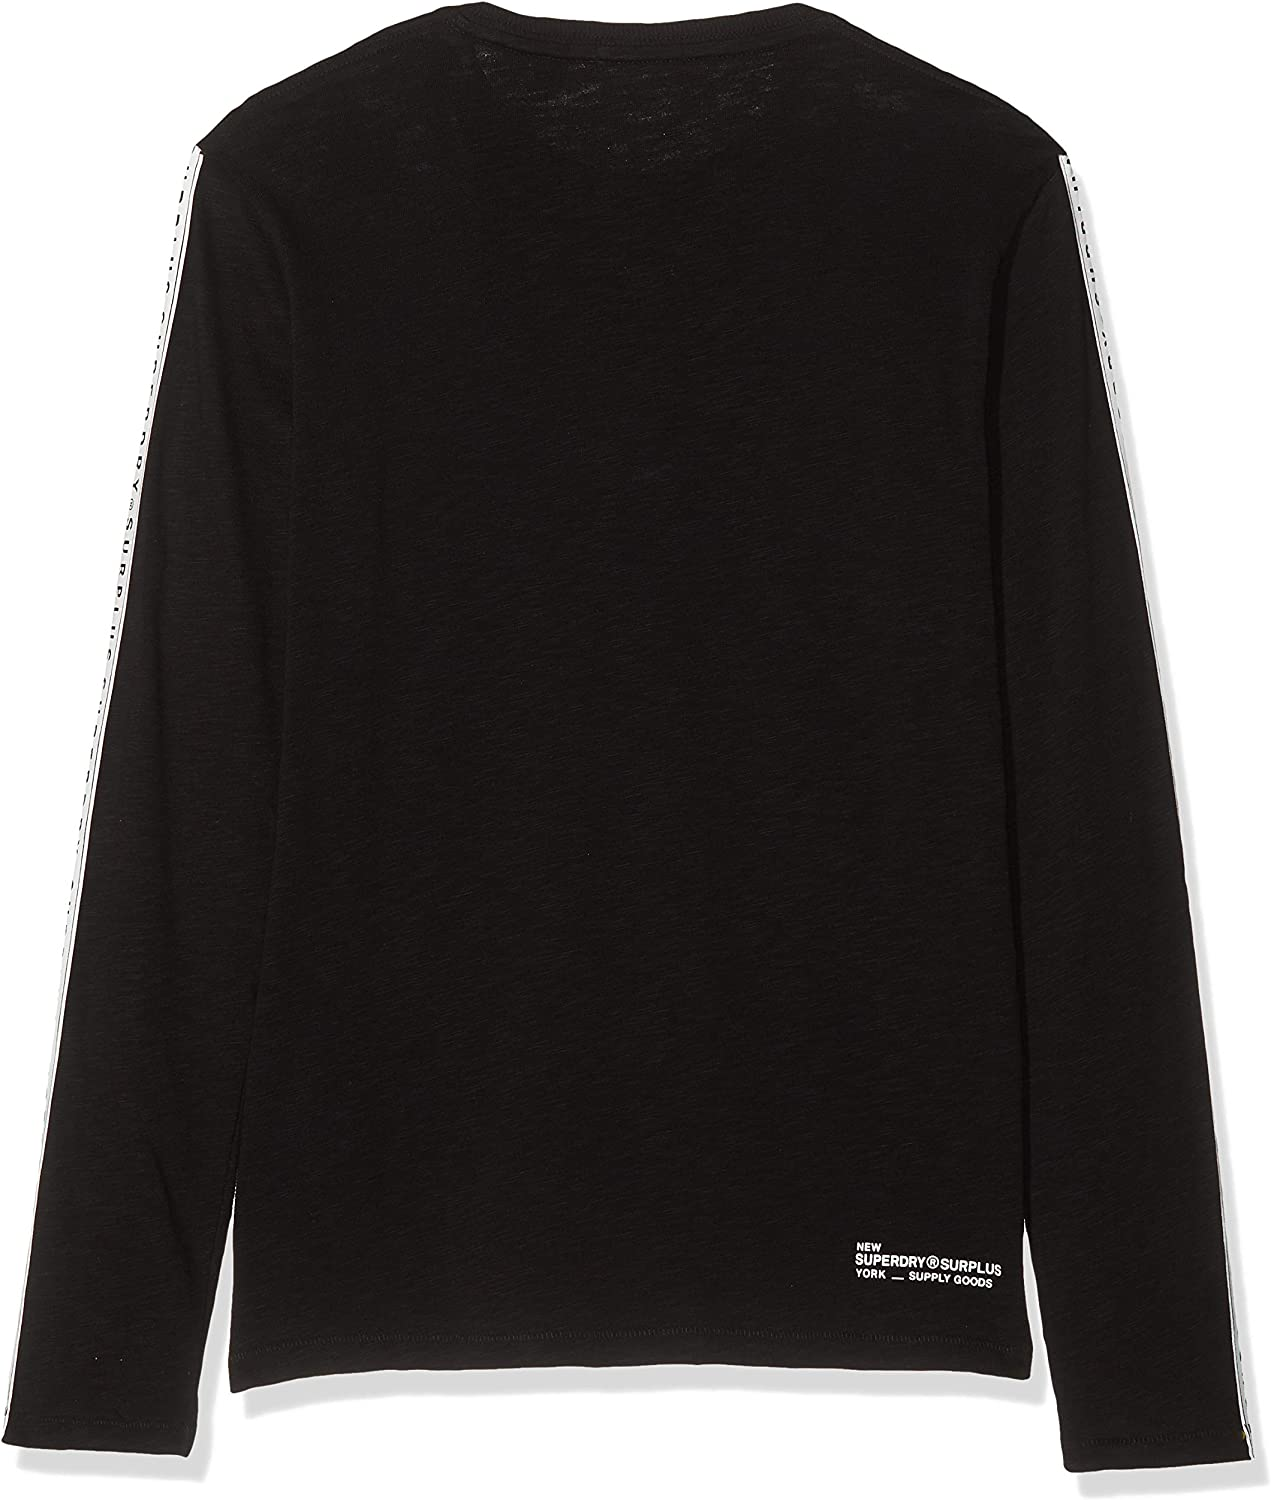 Superdry Suprdry Surplus Goods LS Classic Graphic Tee Maglia a Maniche Lunghe Uomo